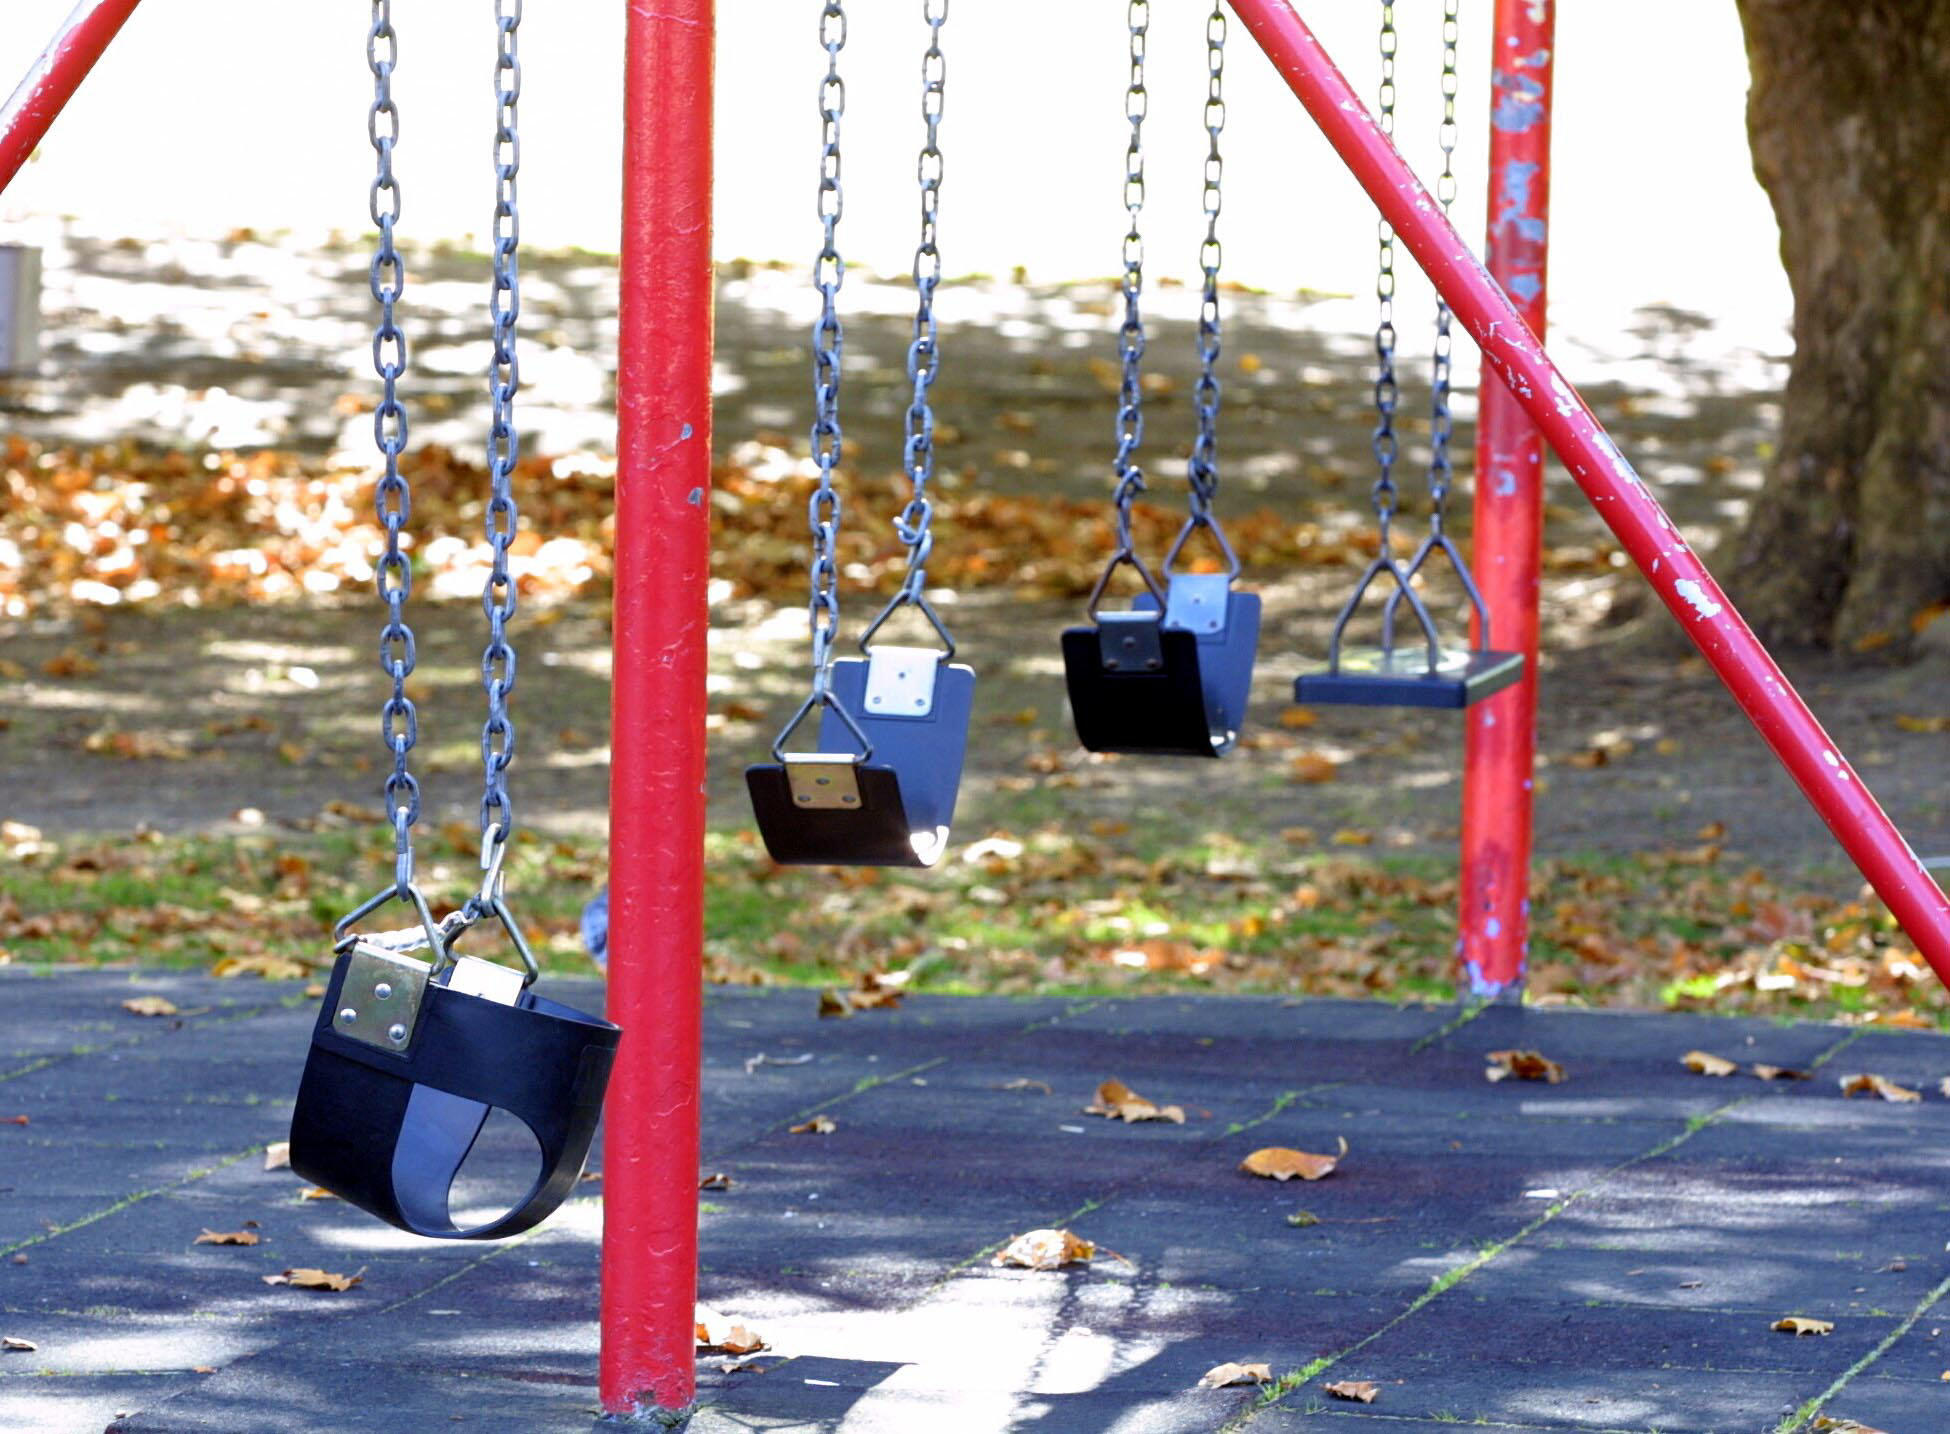 AUCKLAND, NEW ZEALAND - MARCH 22:  Childrens swings are empty at a local childrens playground.  (Photo by Michael Bradley/Getty Images)